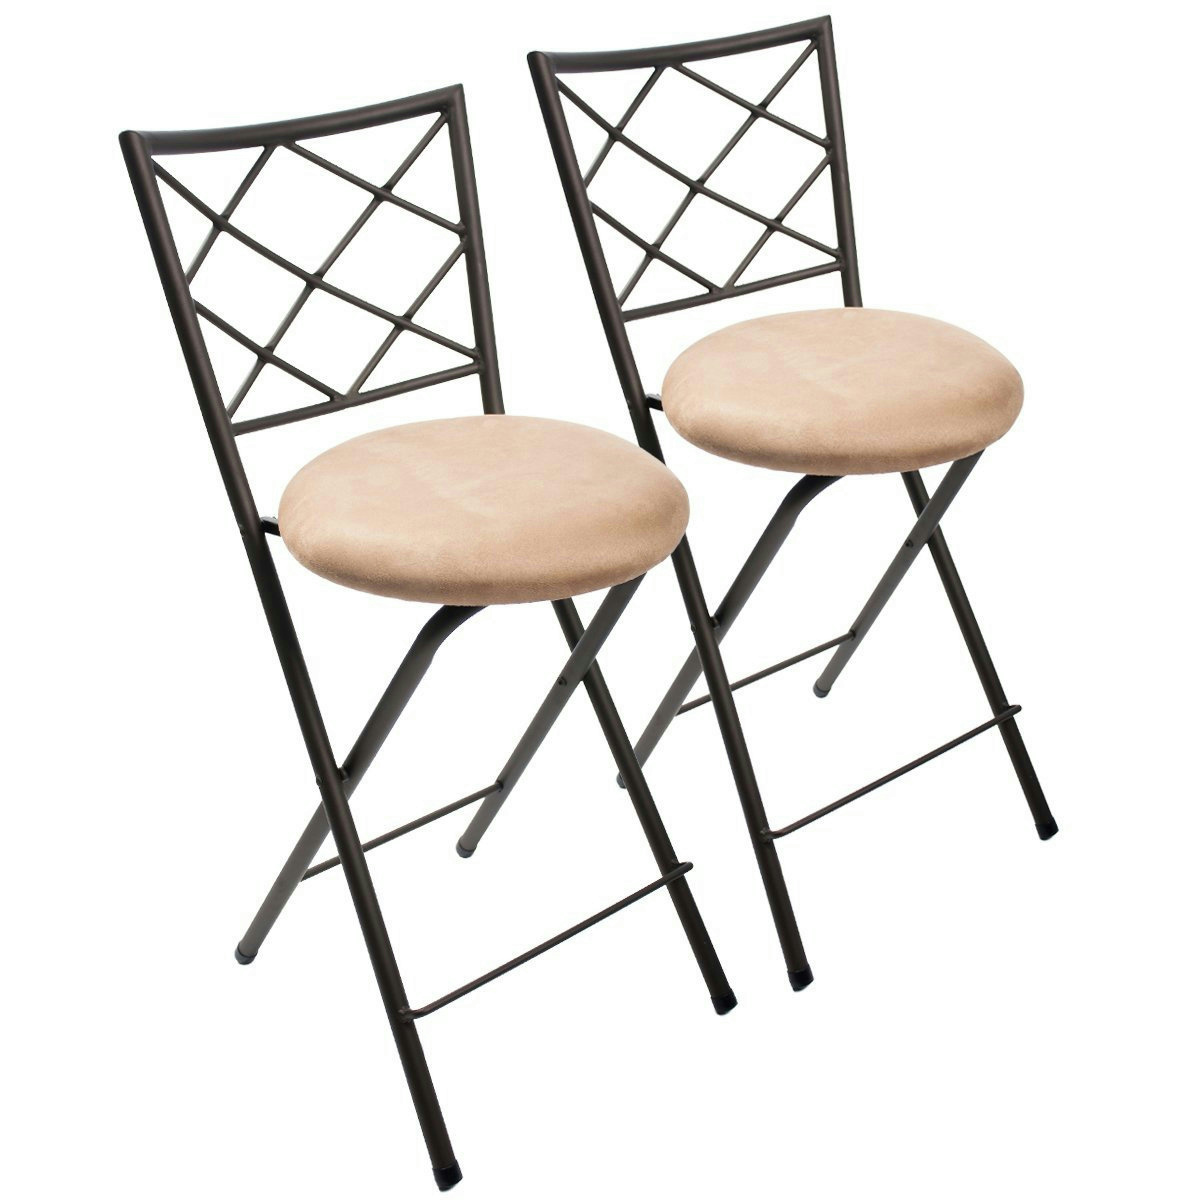 jcp home parker folding stool set bronze cushion seat bar bistro kitchen chair ebay. Black Bedroom Furniture Sets. Home Design Ideas